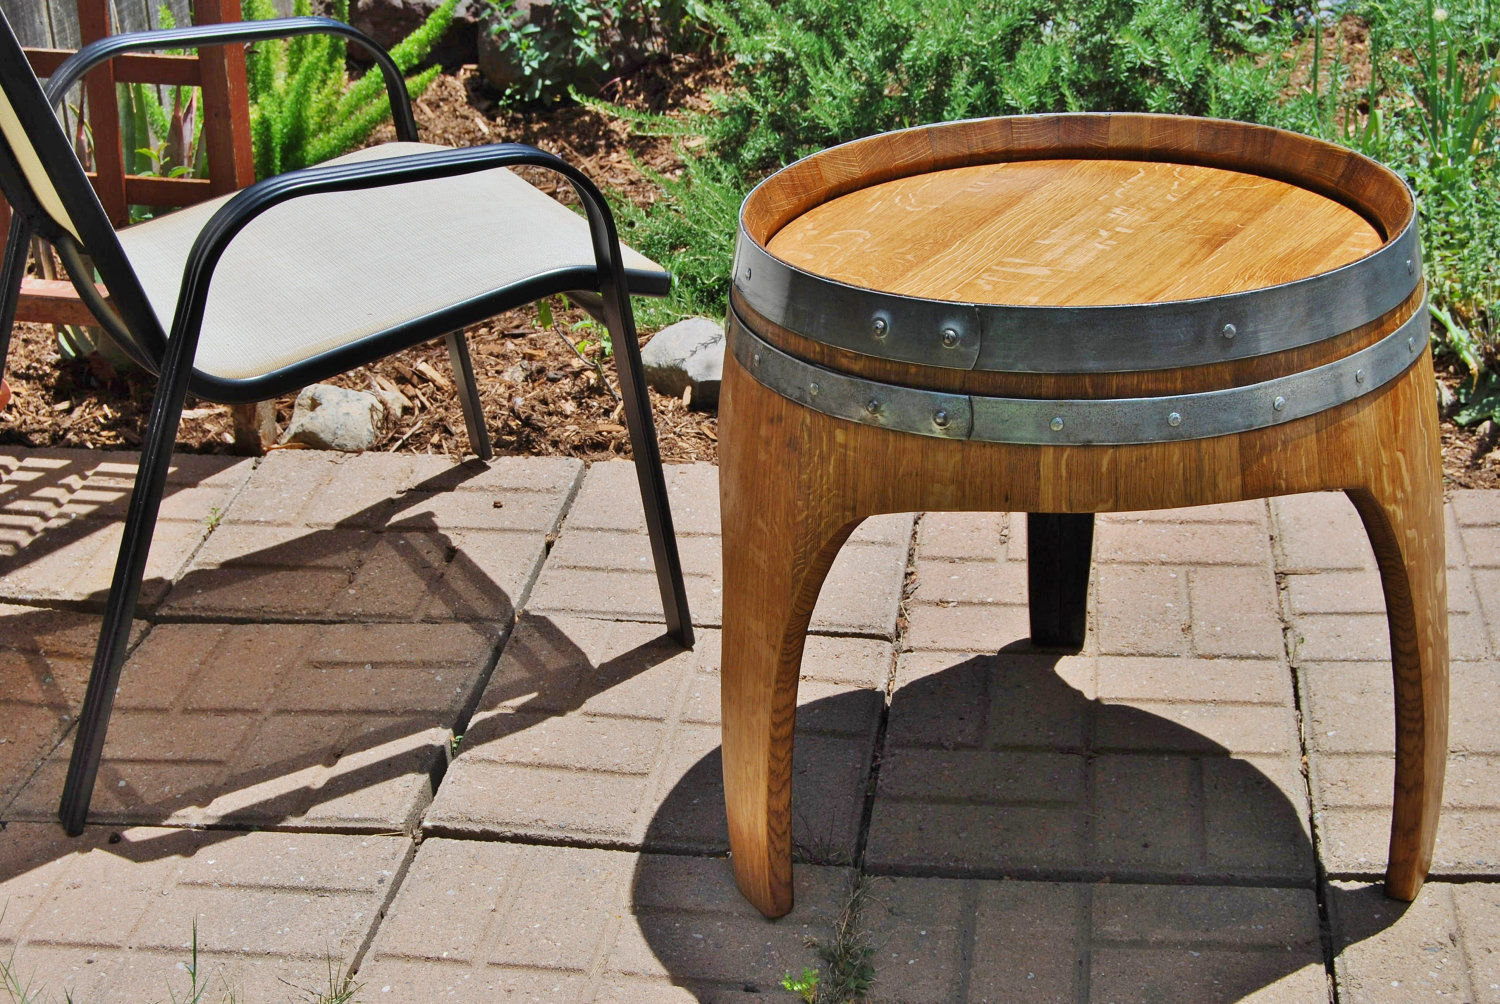 whiskey barrel top end tables barrels wedding pub bar table arched napa valley wine with legs upcycled accent bbq and chairs wooden bedside designs side storage bin fall quilted